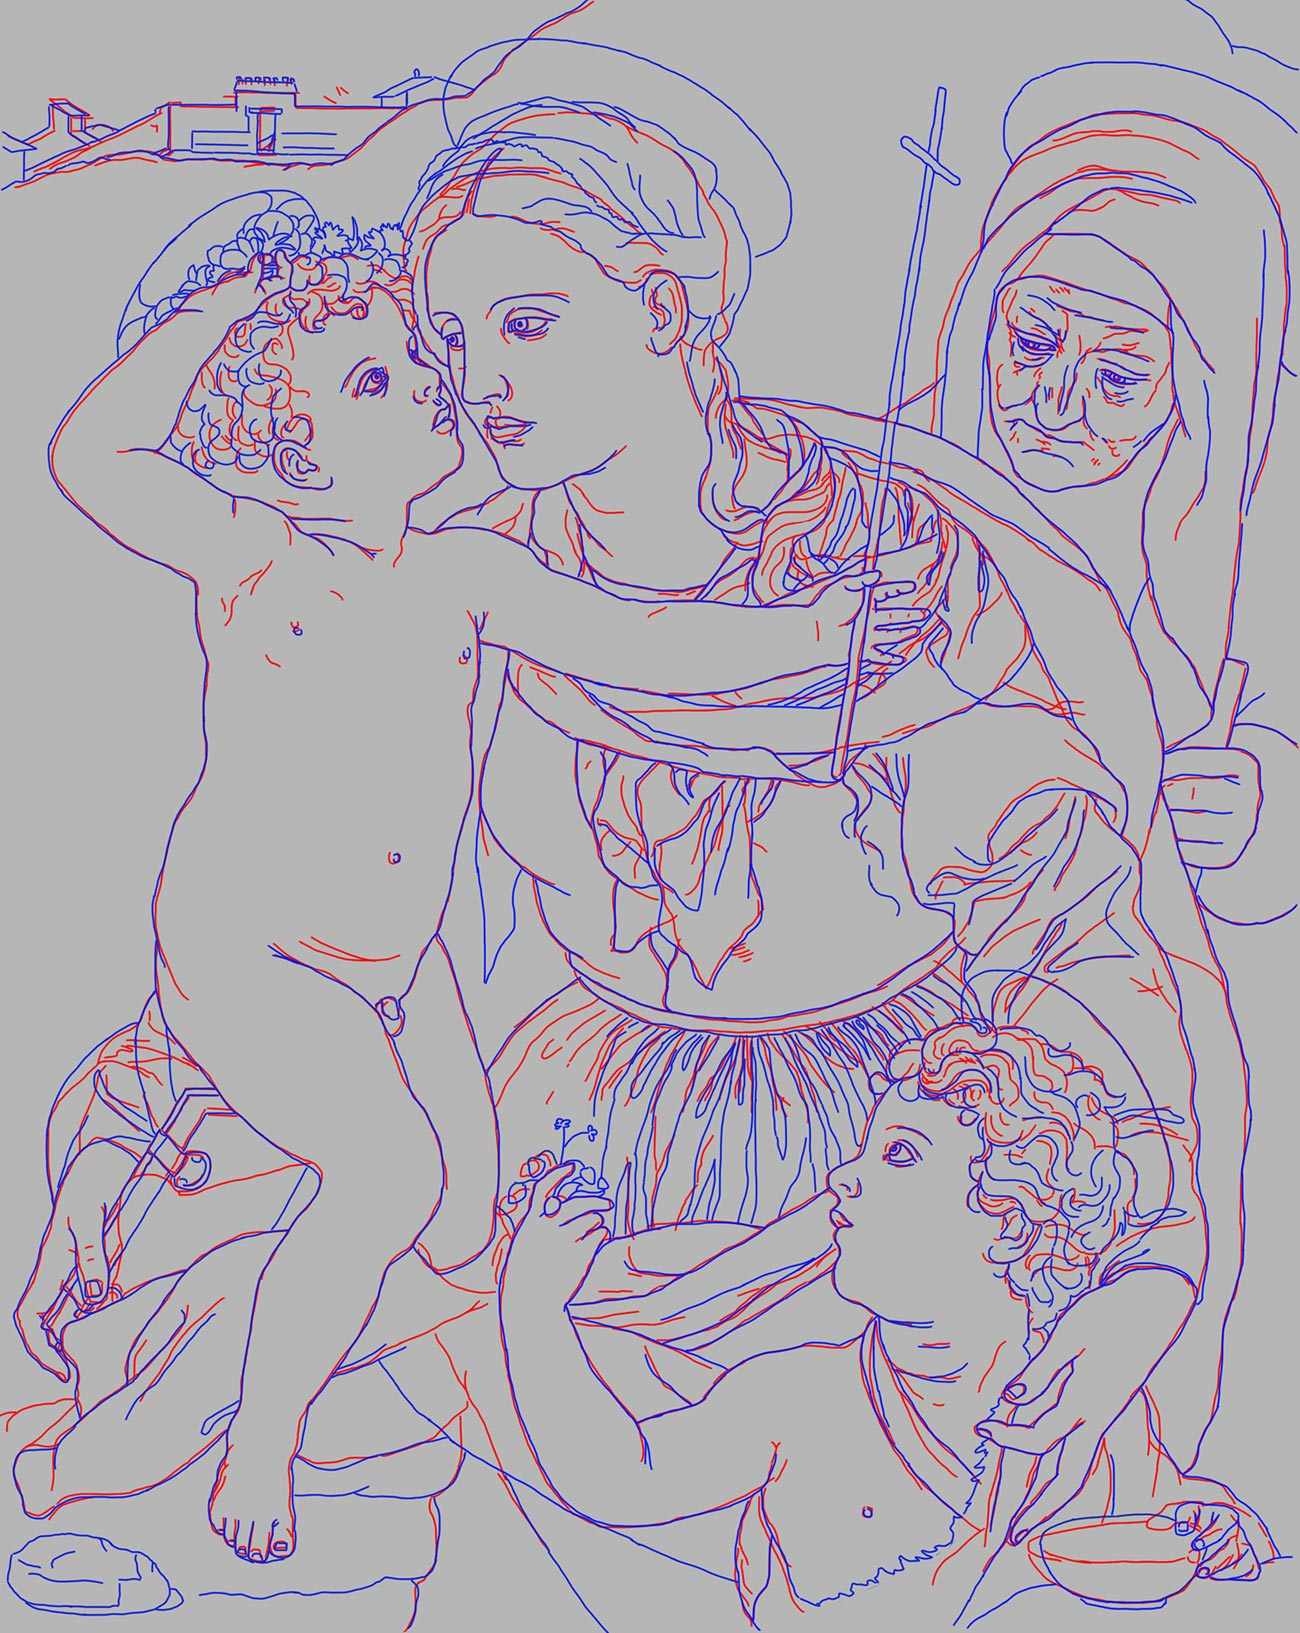 Outline of the painting made with red, blue, and purple lines